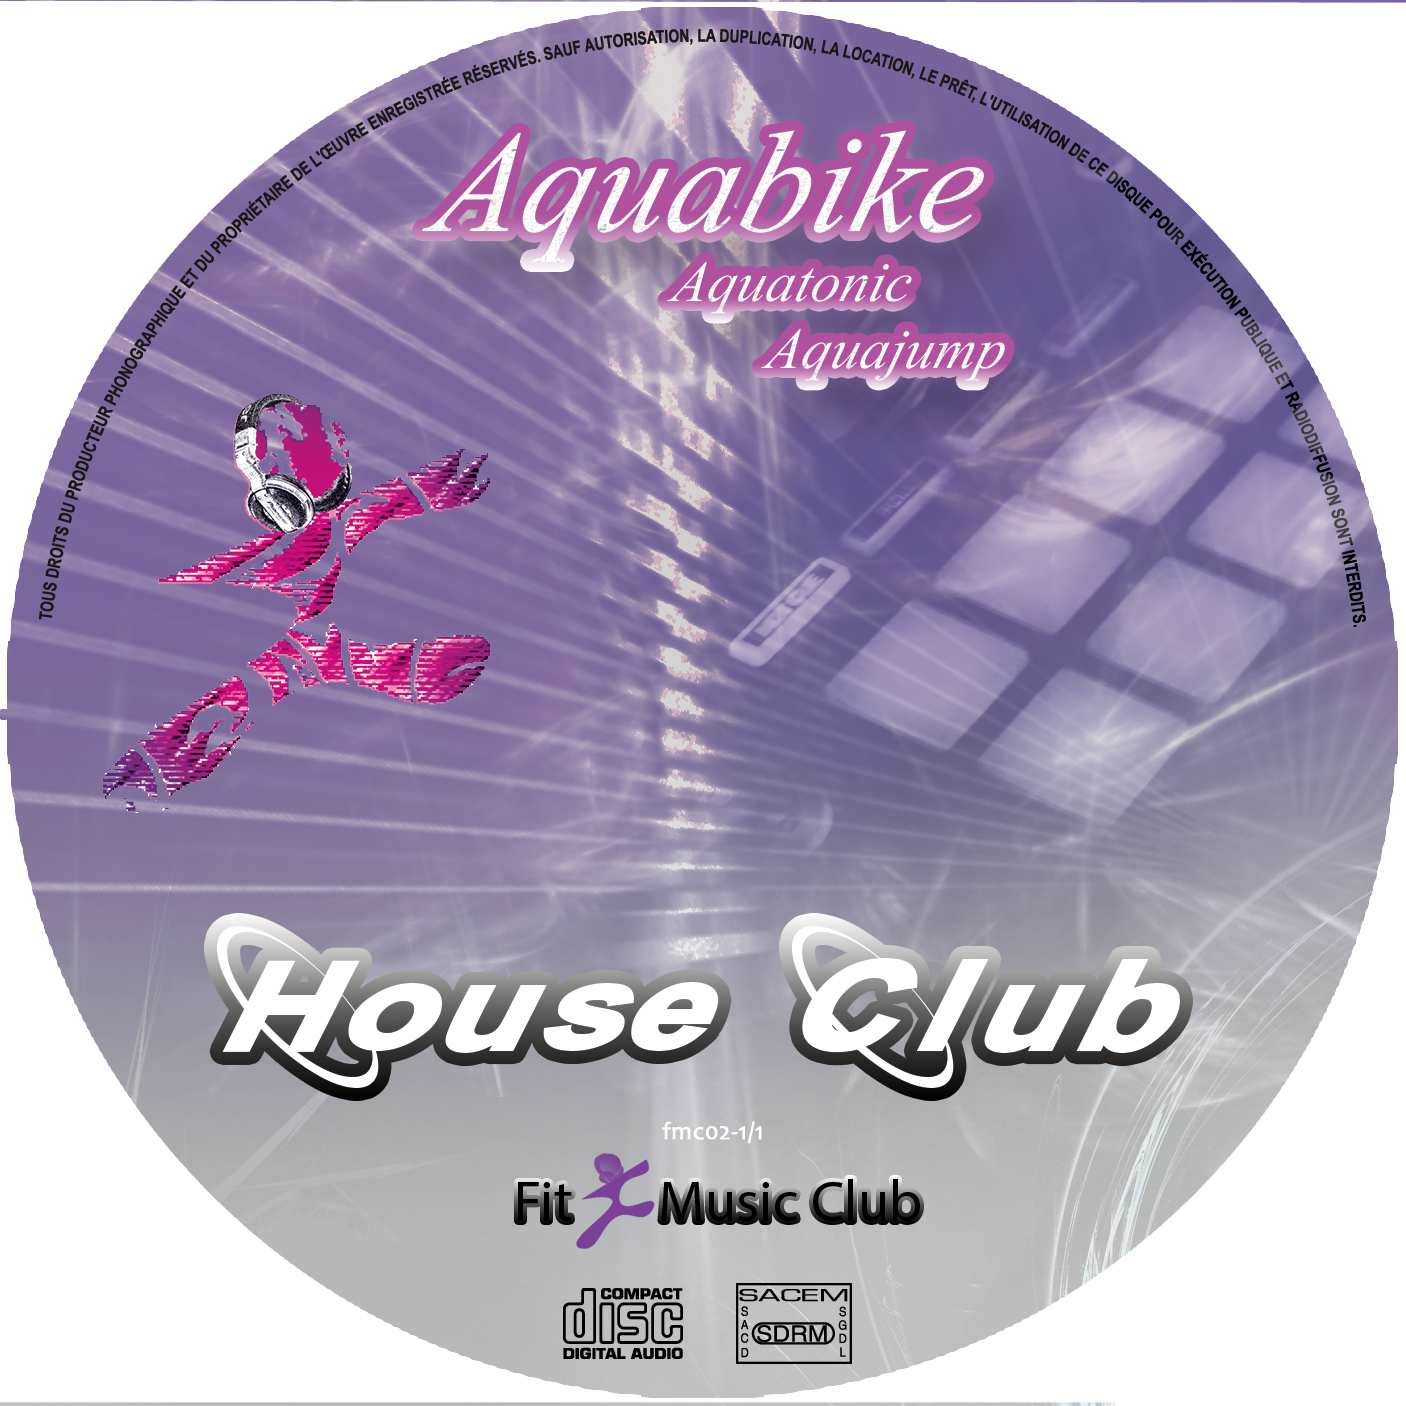 Cd House Club Aquabike